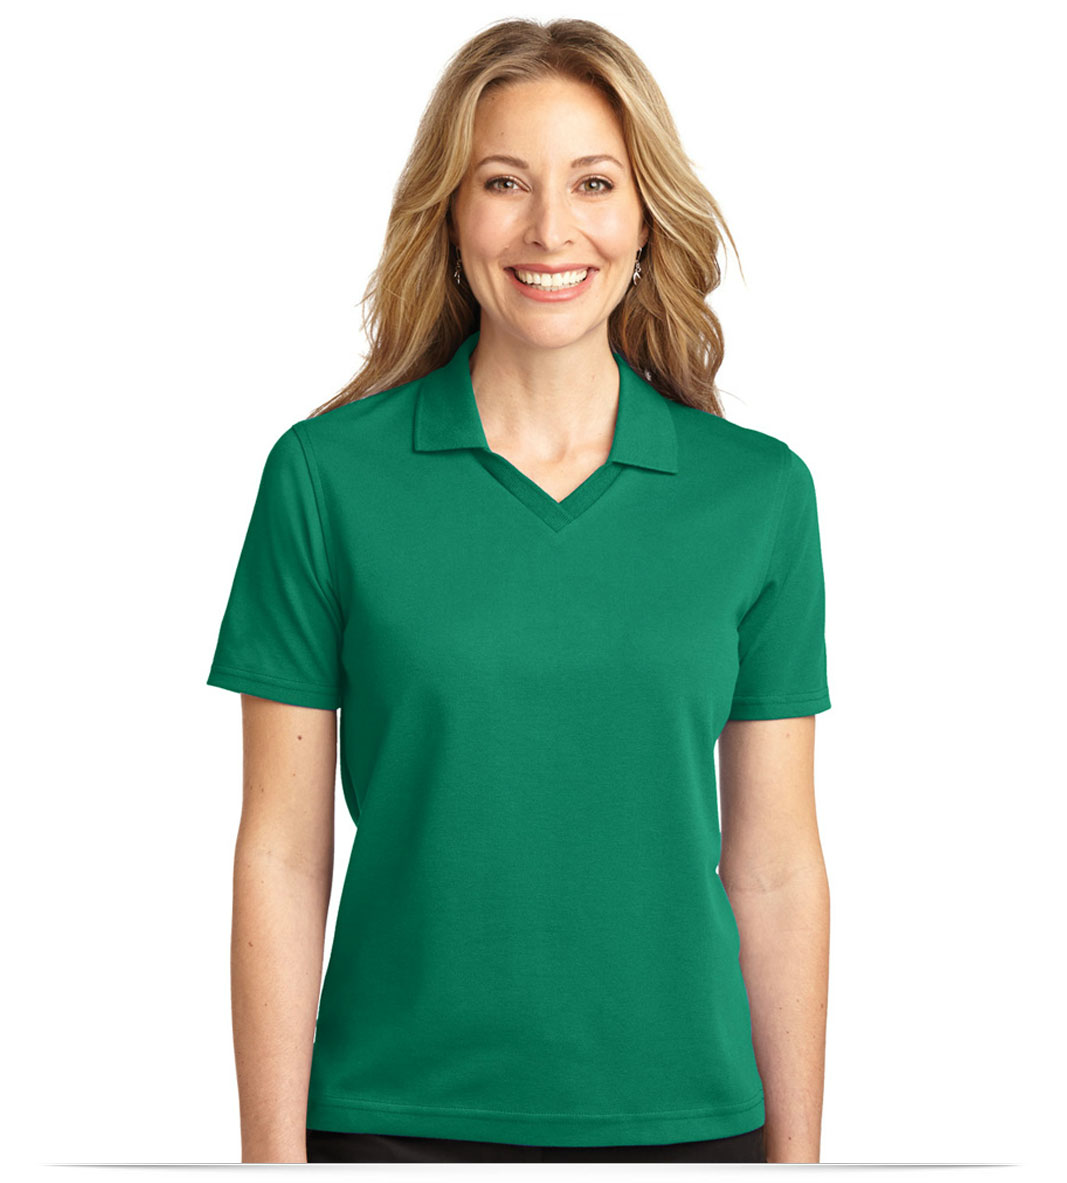 Design embroidered Rapid Dry Sport Shirt Ladies online at AllStar Logo 9cc6ac5e6f